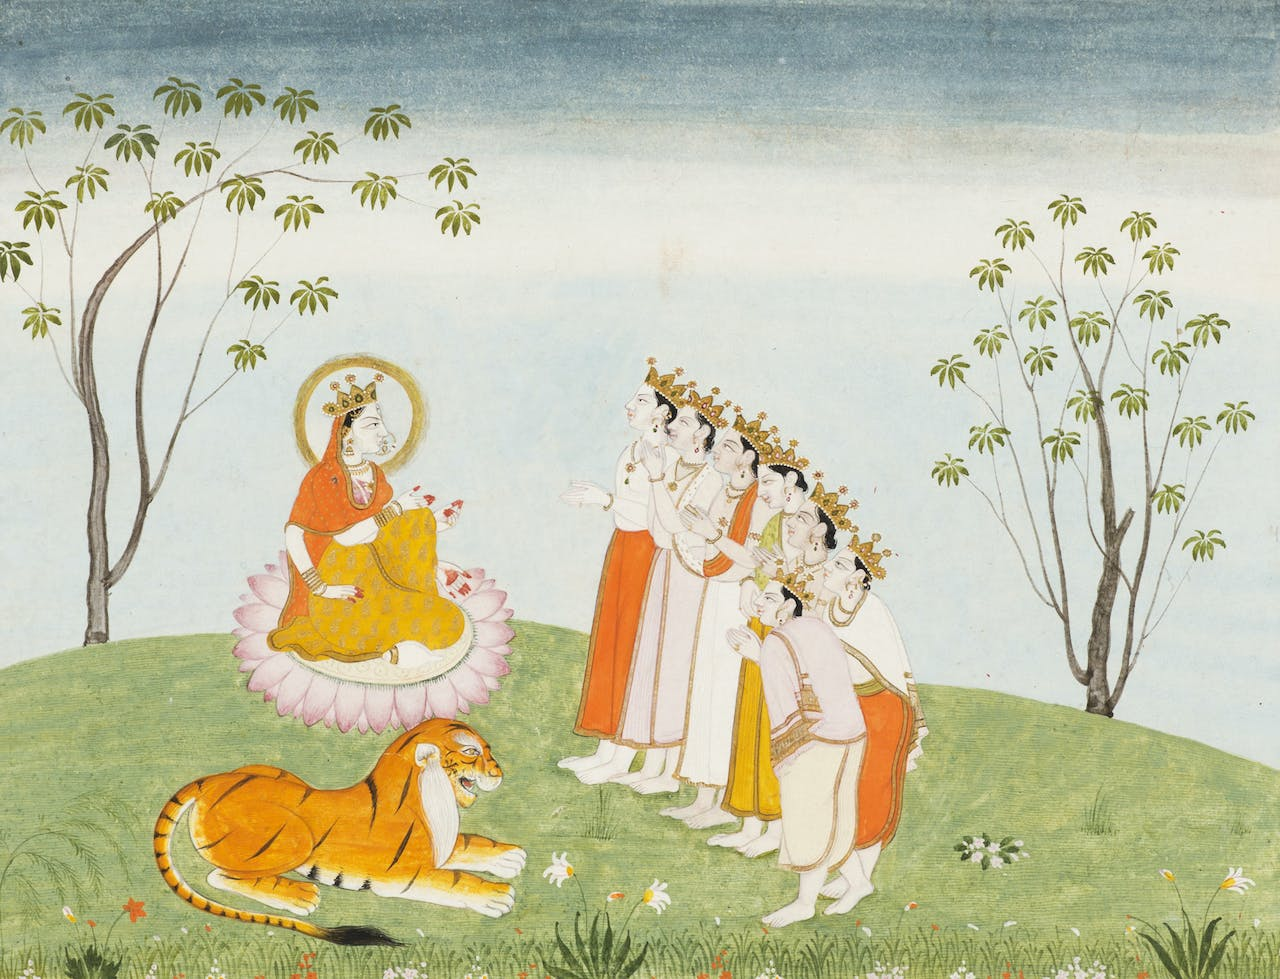 The Gods Appeal to the Great Devi for Help